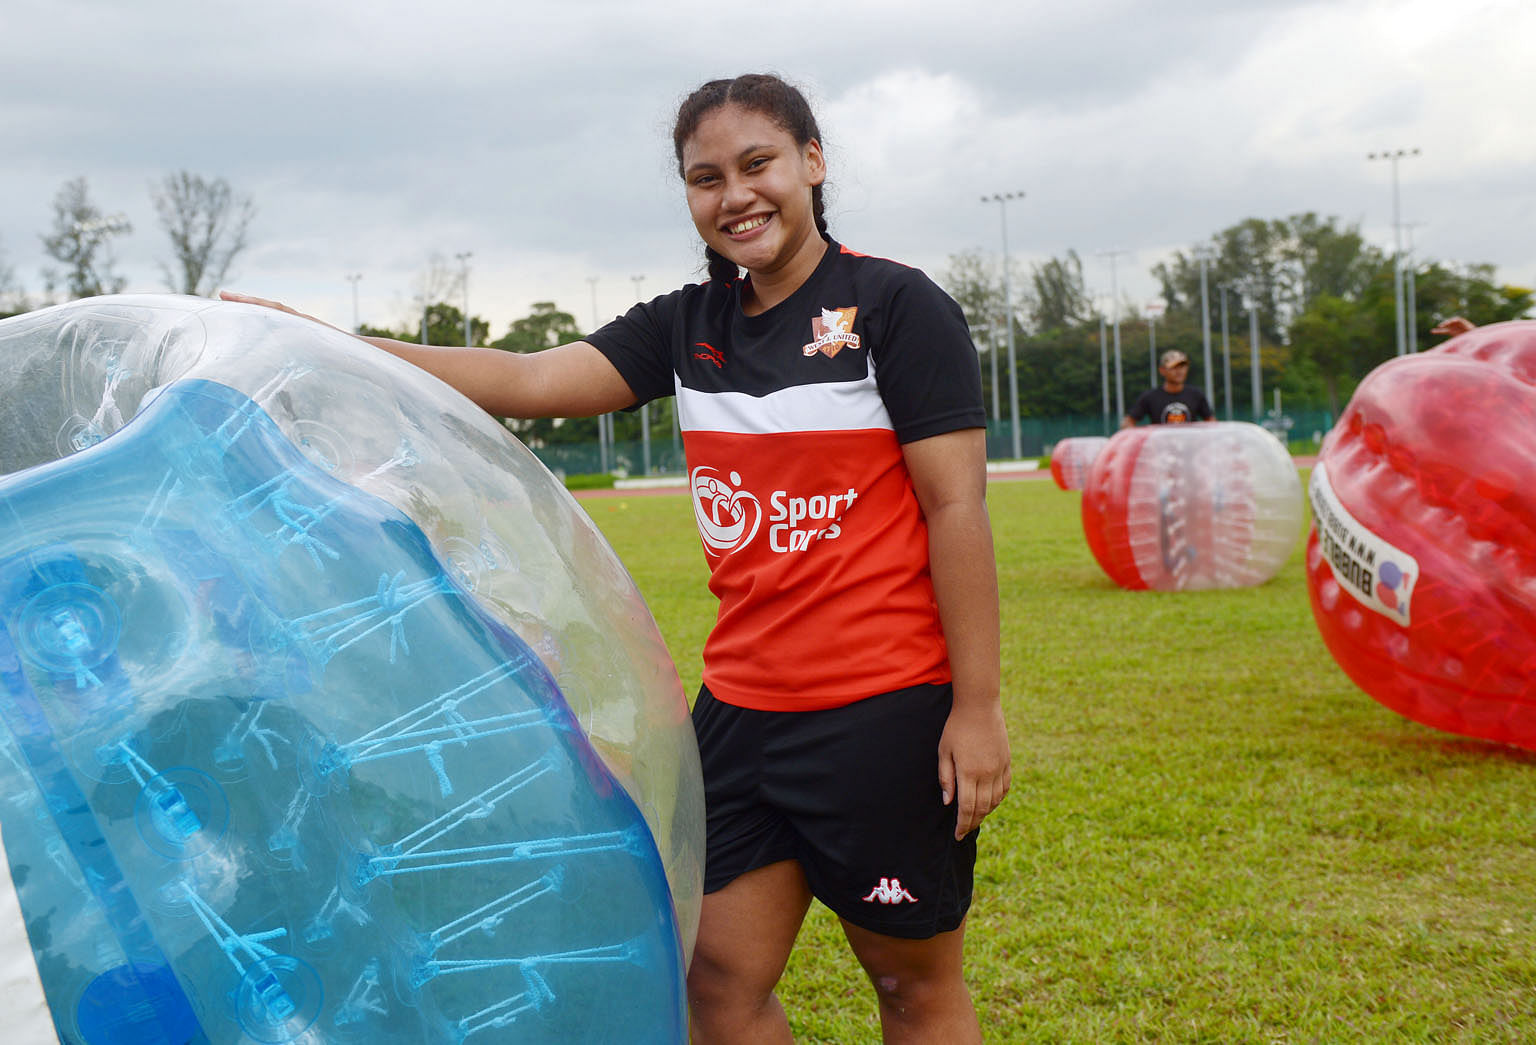 Nurul Lisa Mohammad Syahrin at a game of bubble football at a SportCares camp last month. The teenager wants to give back after having benefited from the SportCares scheme, which uses sports to help those who are disadvantaged.